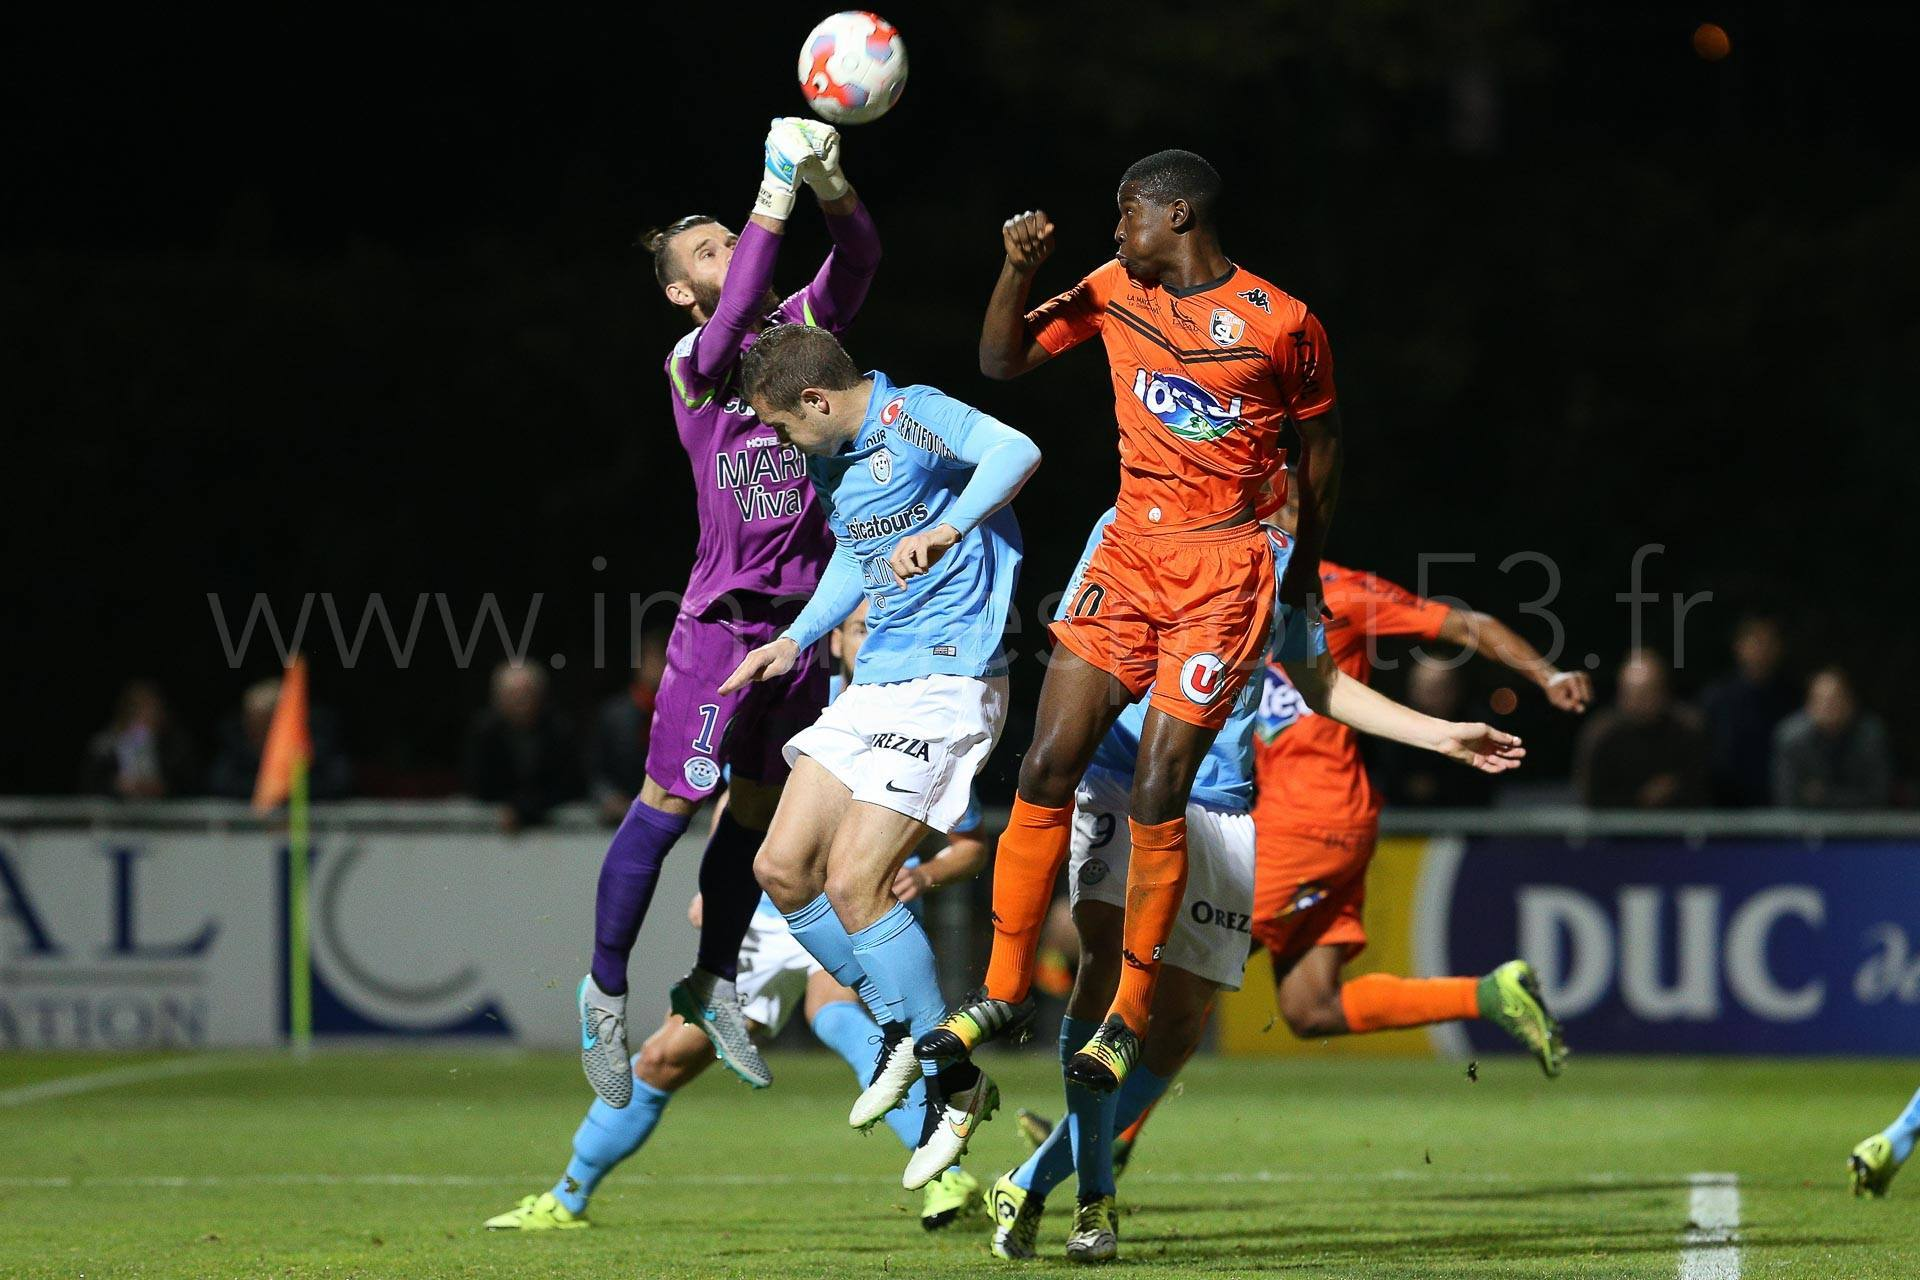 NG-Ligue2-1516-J12-Laval-Tours_41